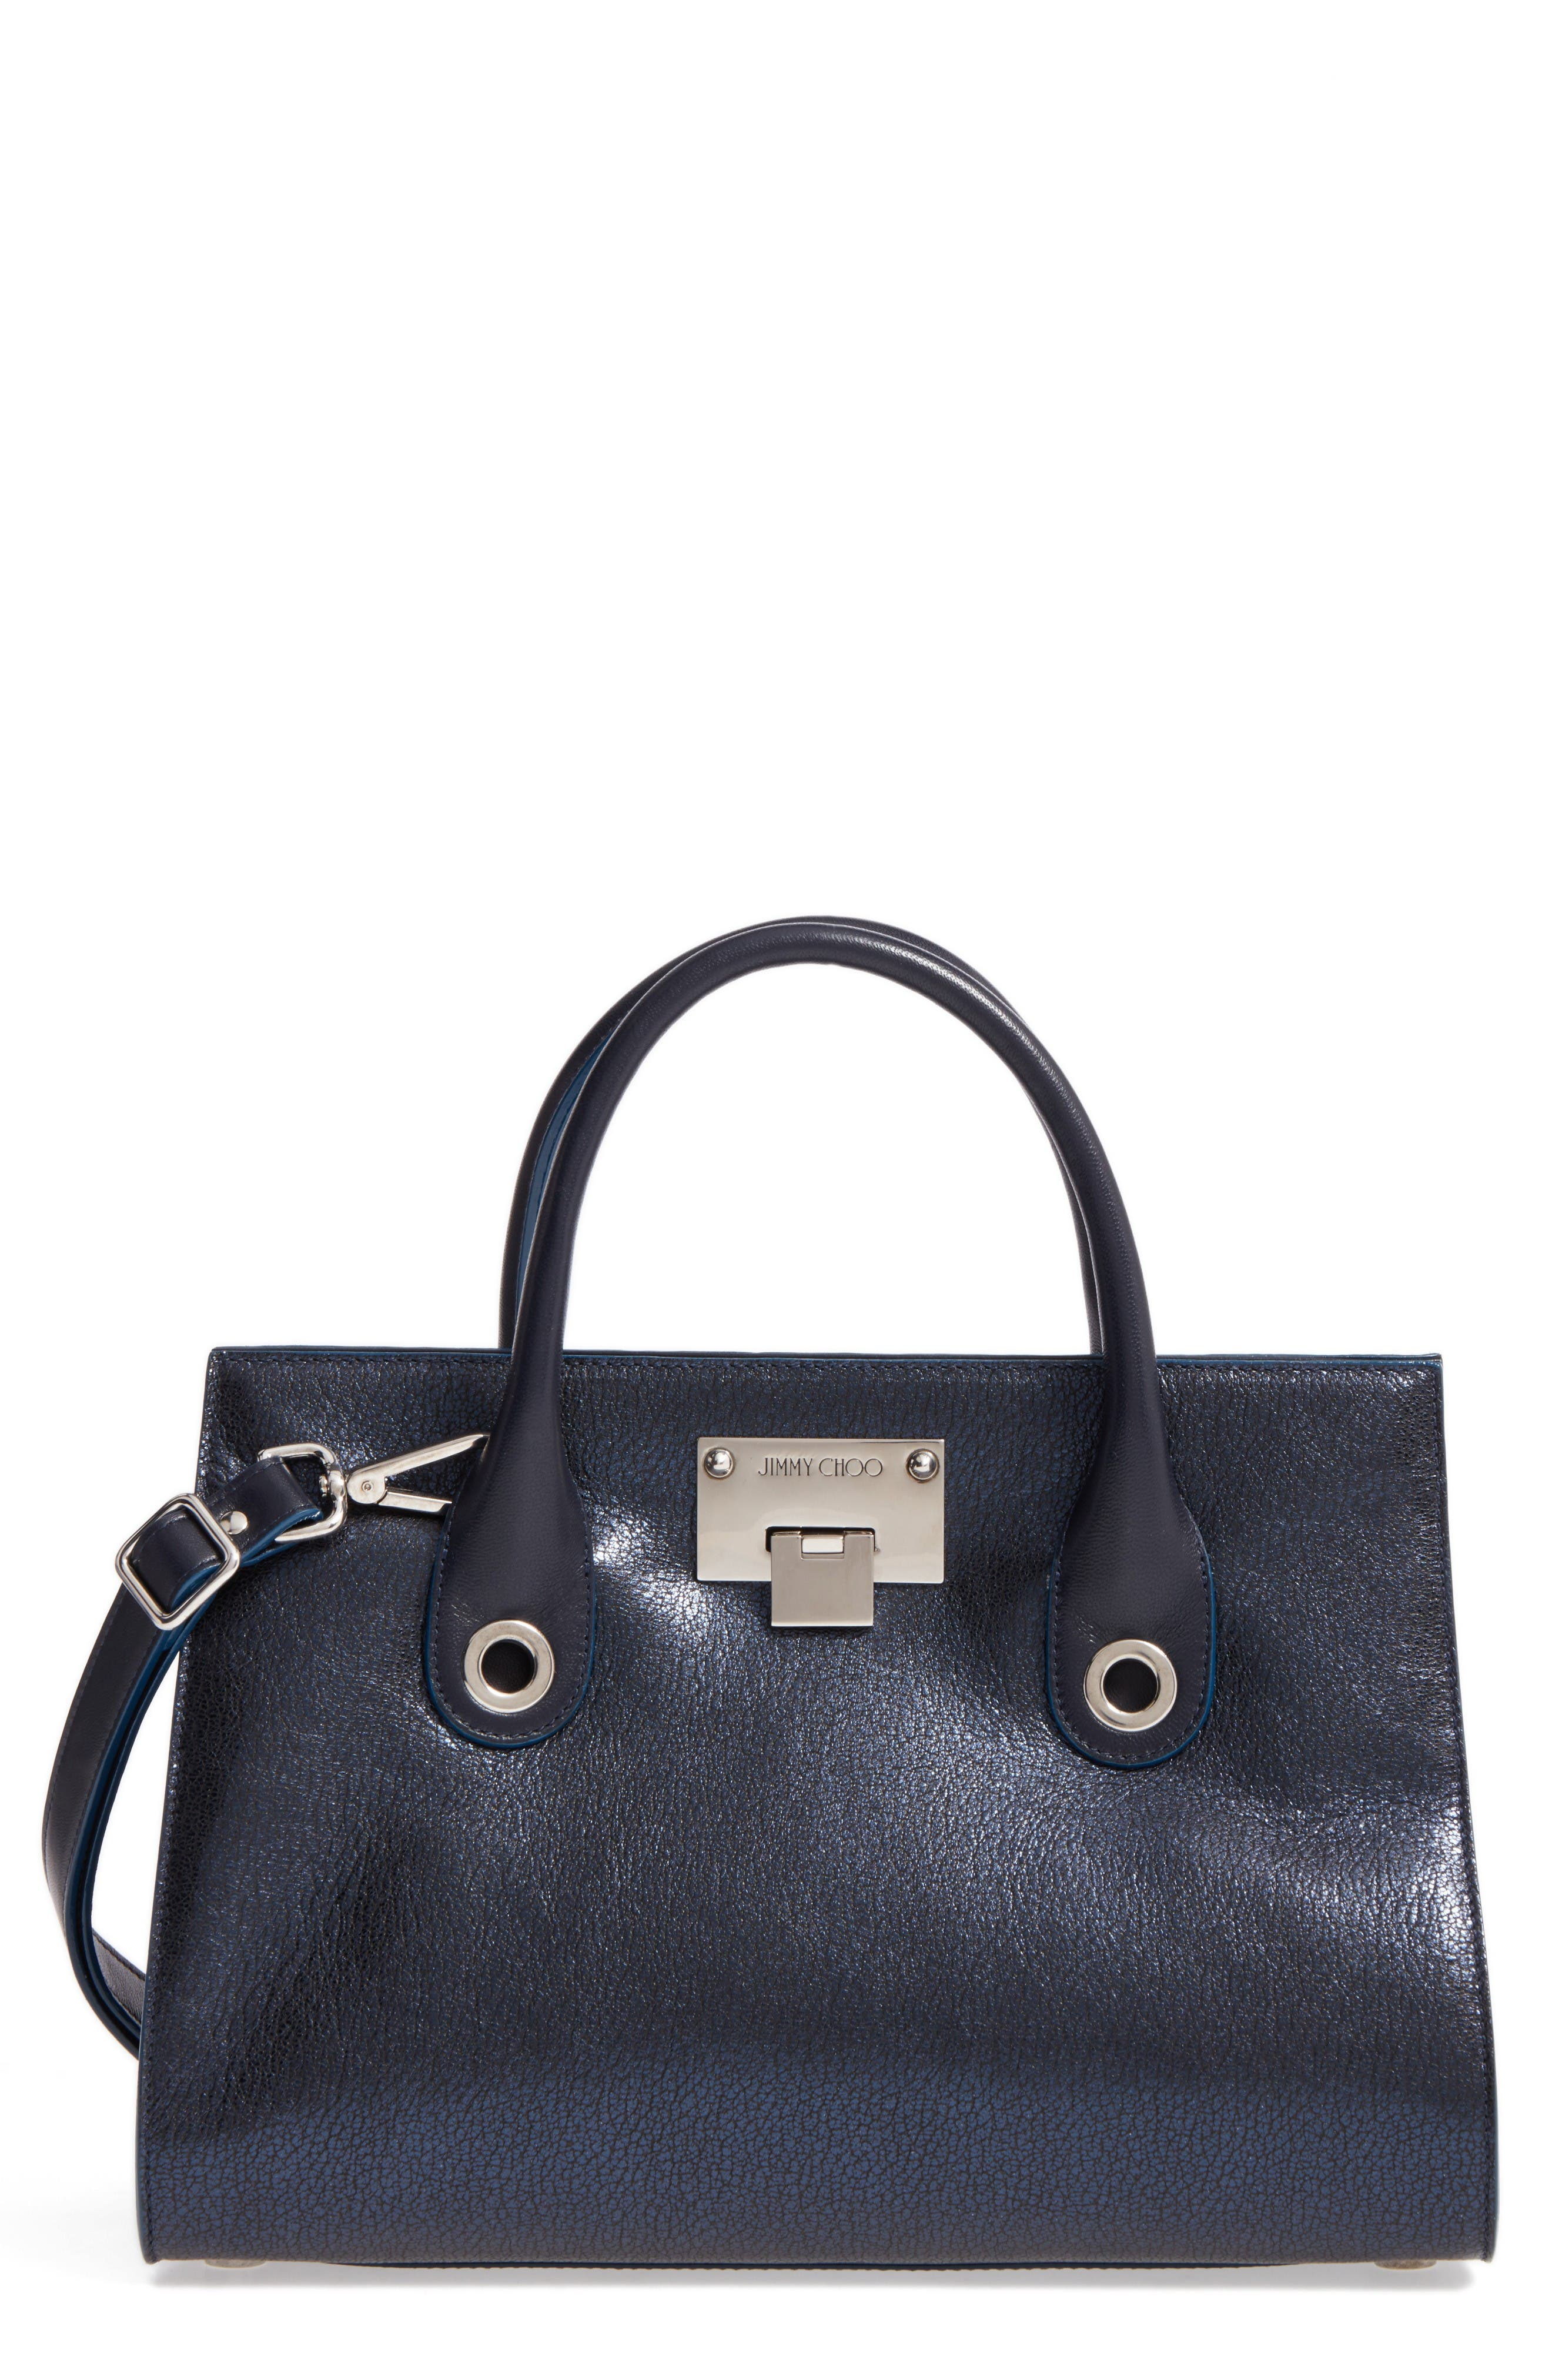 Jimmy Choo Medium Riley Metallic Leather Tote